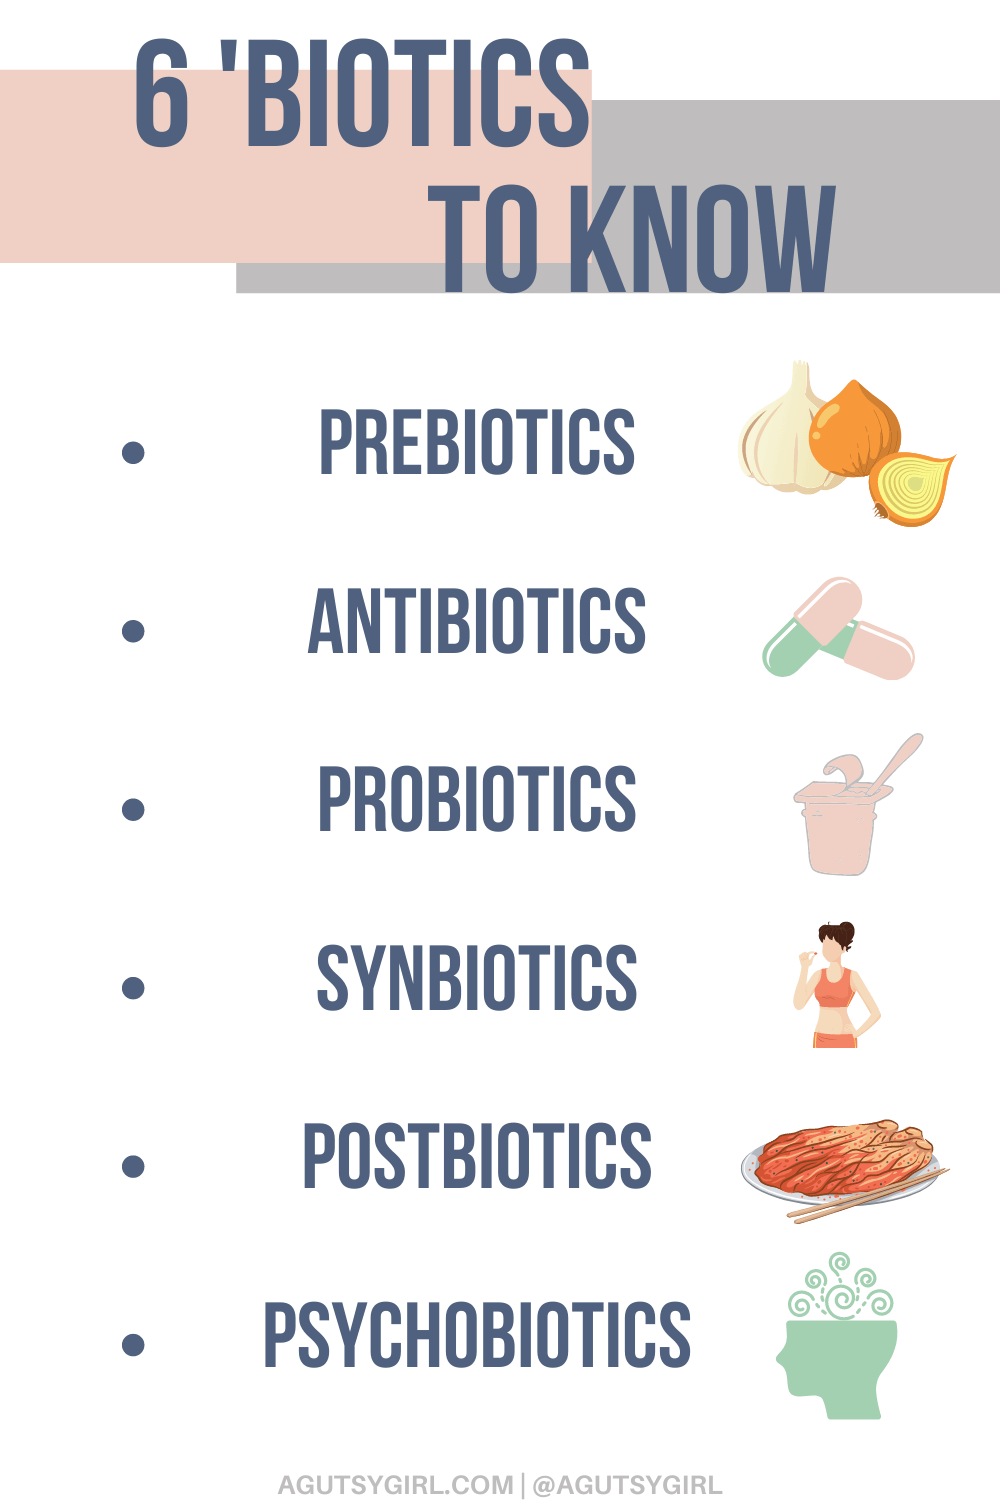 Psychobiotics + 5 other biotics to know agutsygirl.com #probiotics #psychobiotics #antibiotics